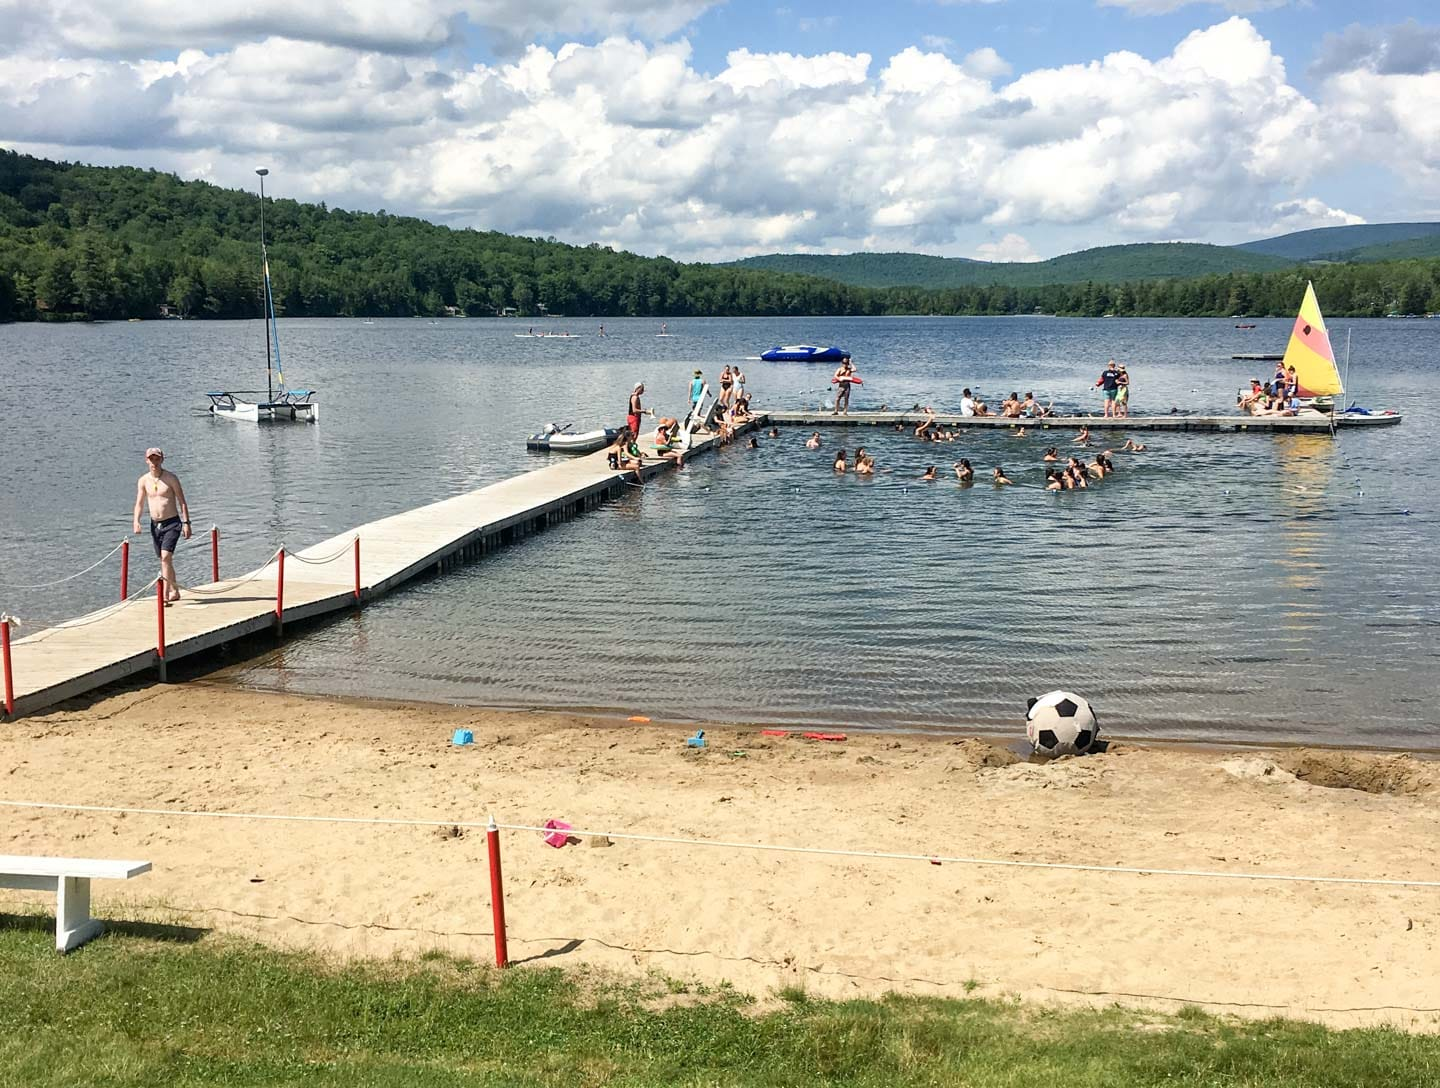 dock of a lake with a bunch of campers playing in water